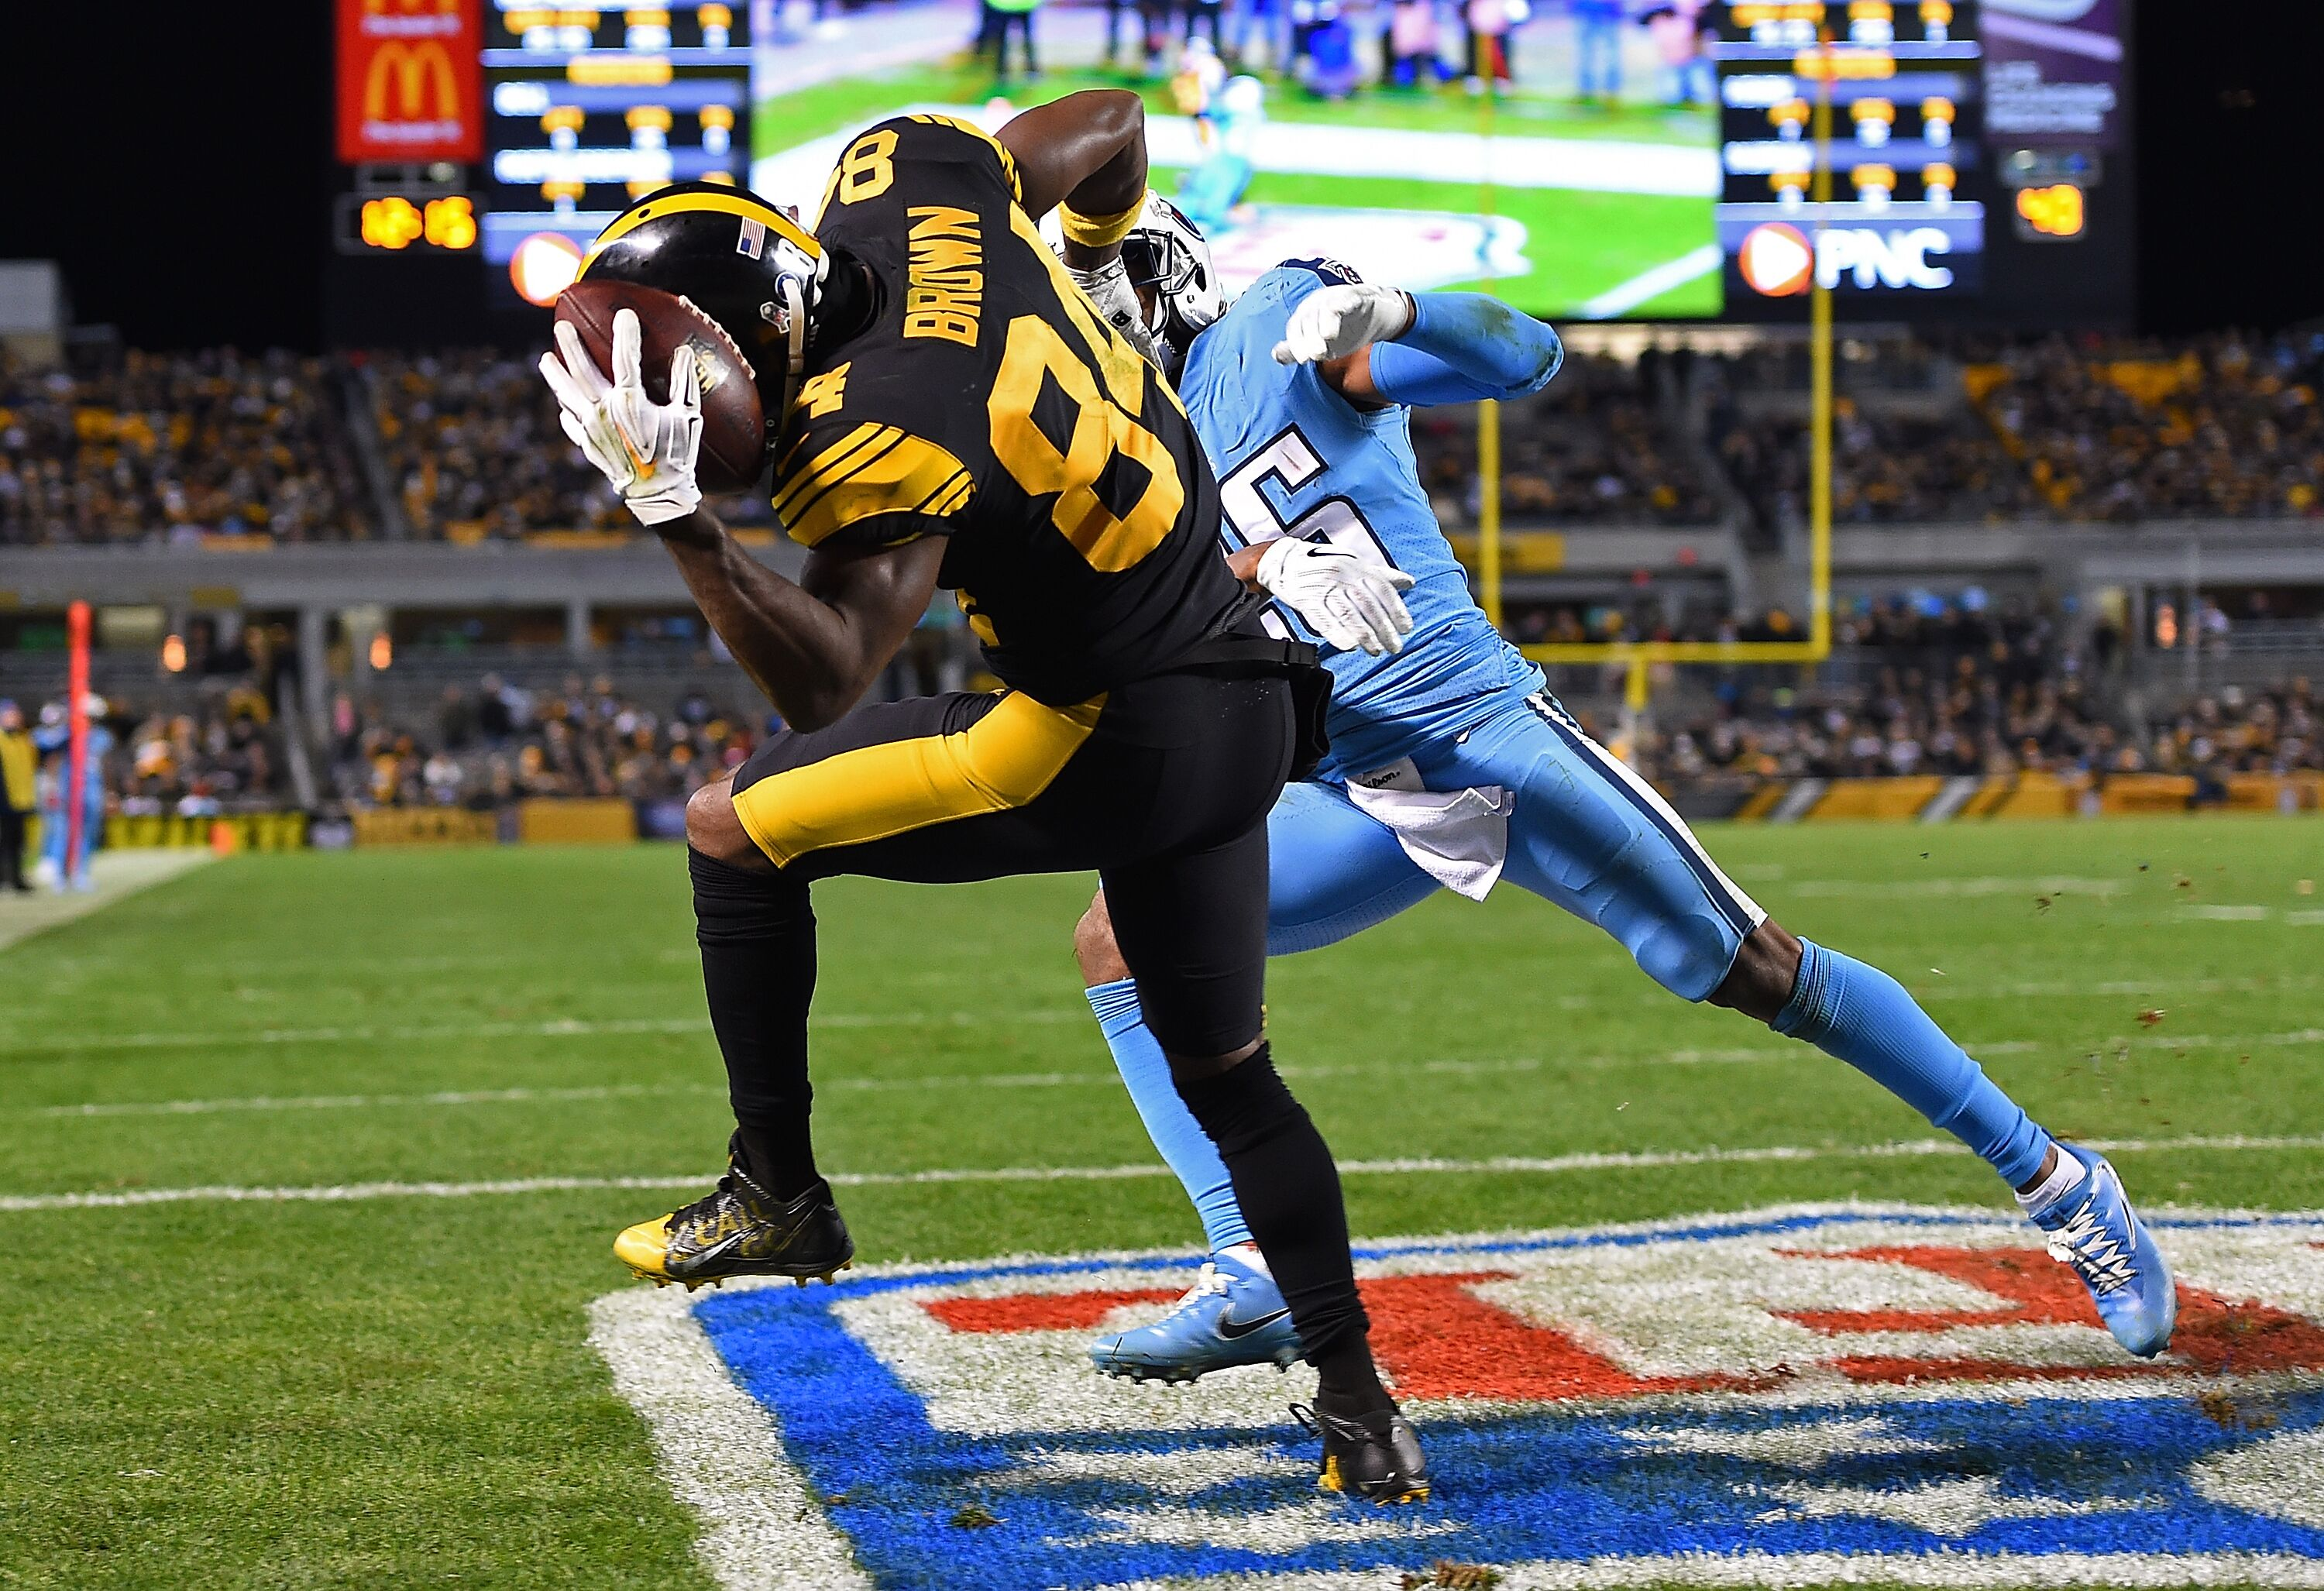 875133168-tennessee-titans-v-pittsburgh-steelers.jpg